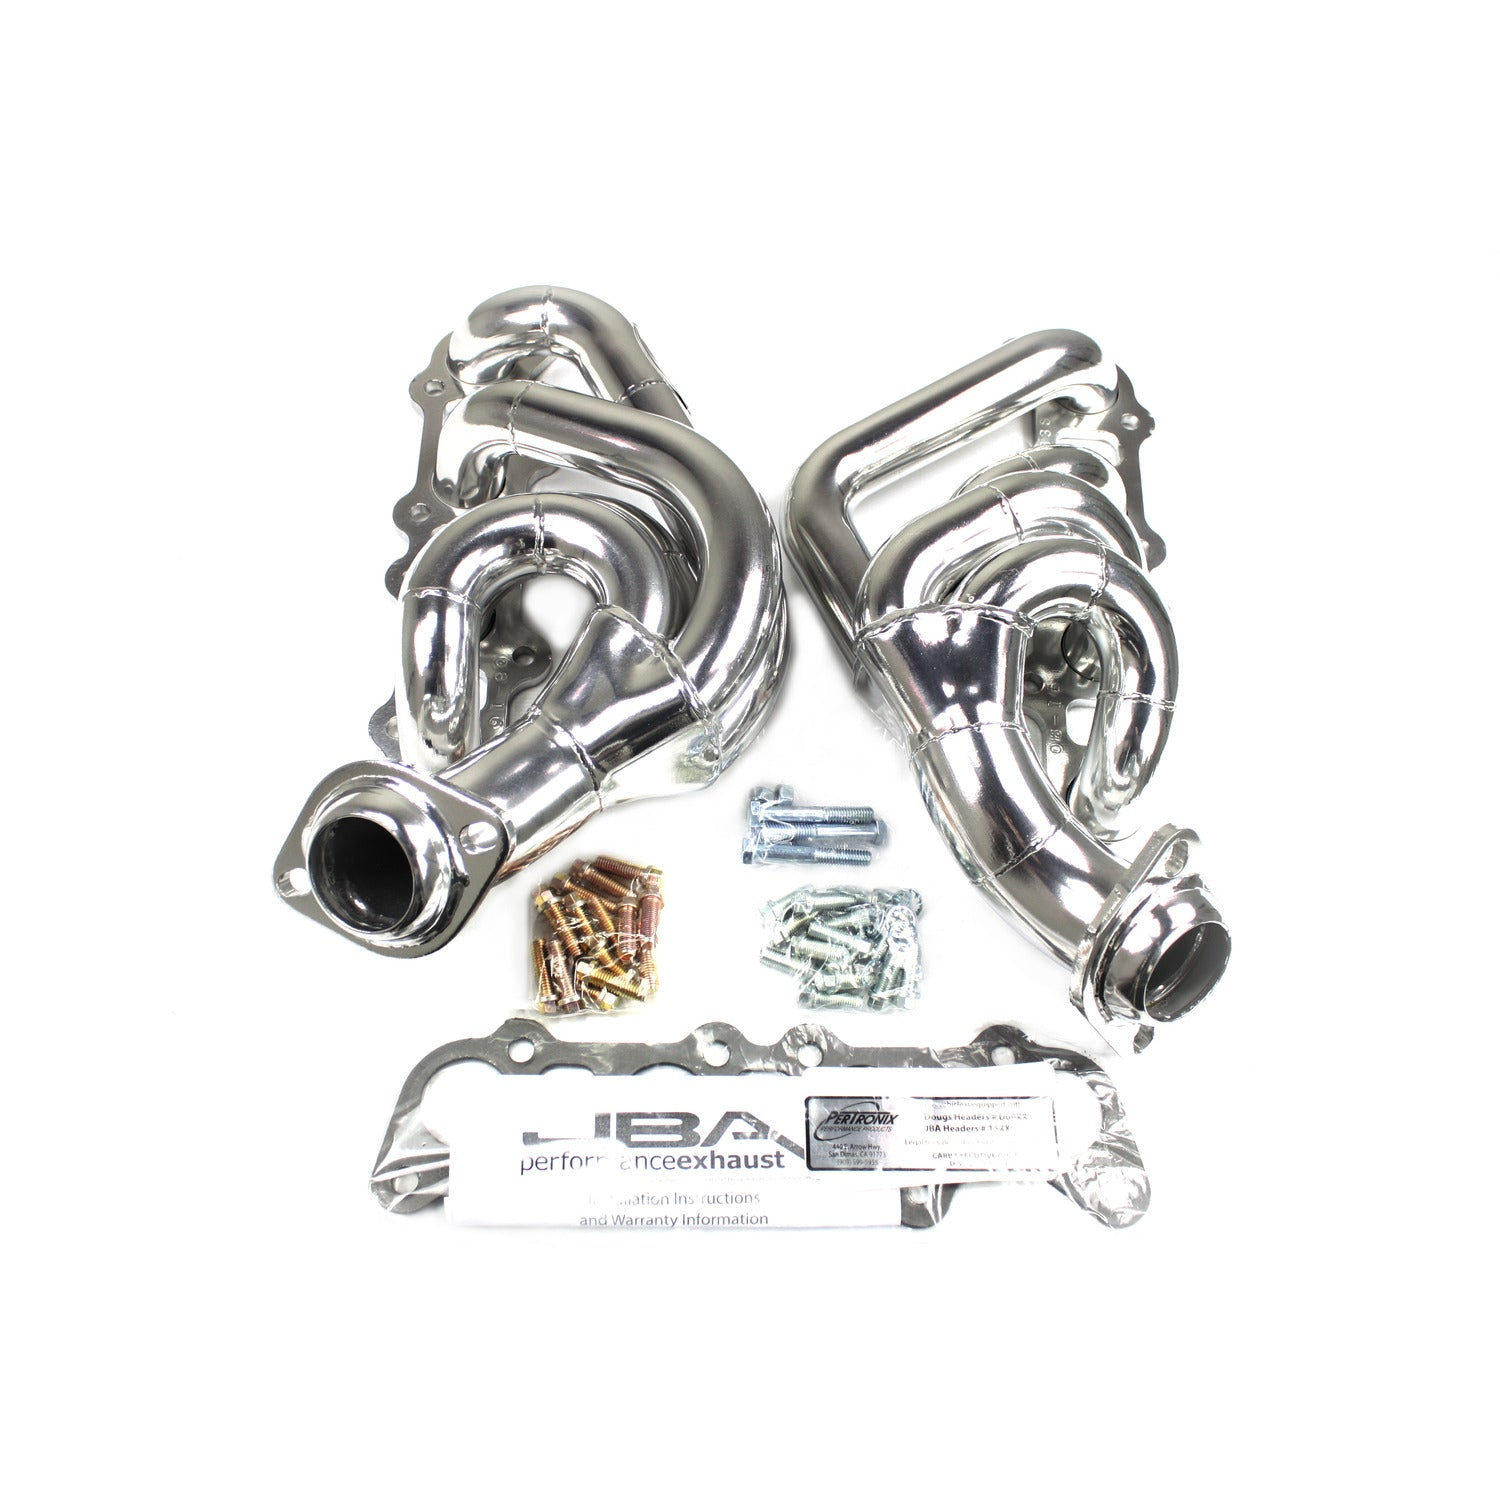 JBA Performance Exhaust 1683SJS  Header Shorty Stainless Steel 15-19 Ford Truck F-150 5.0L Silver Ceramic